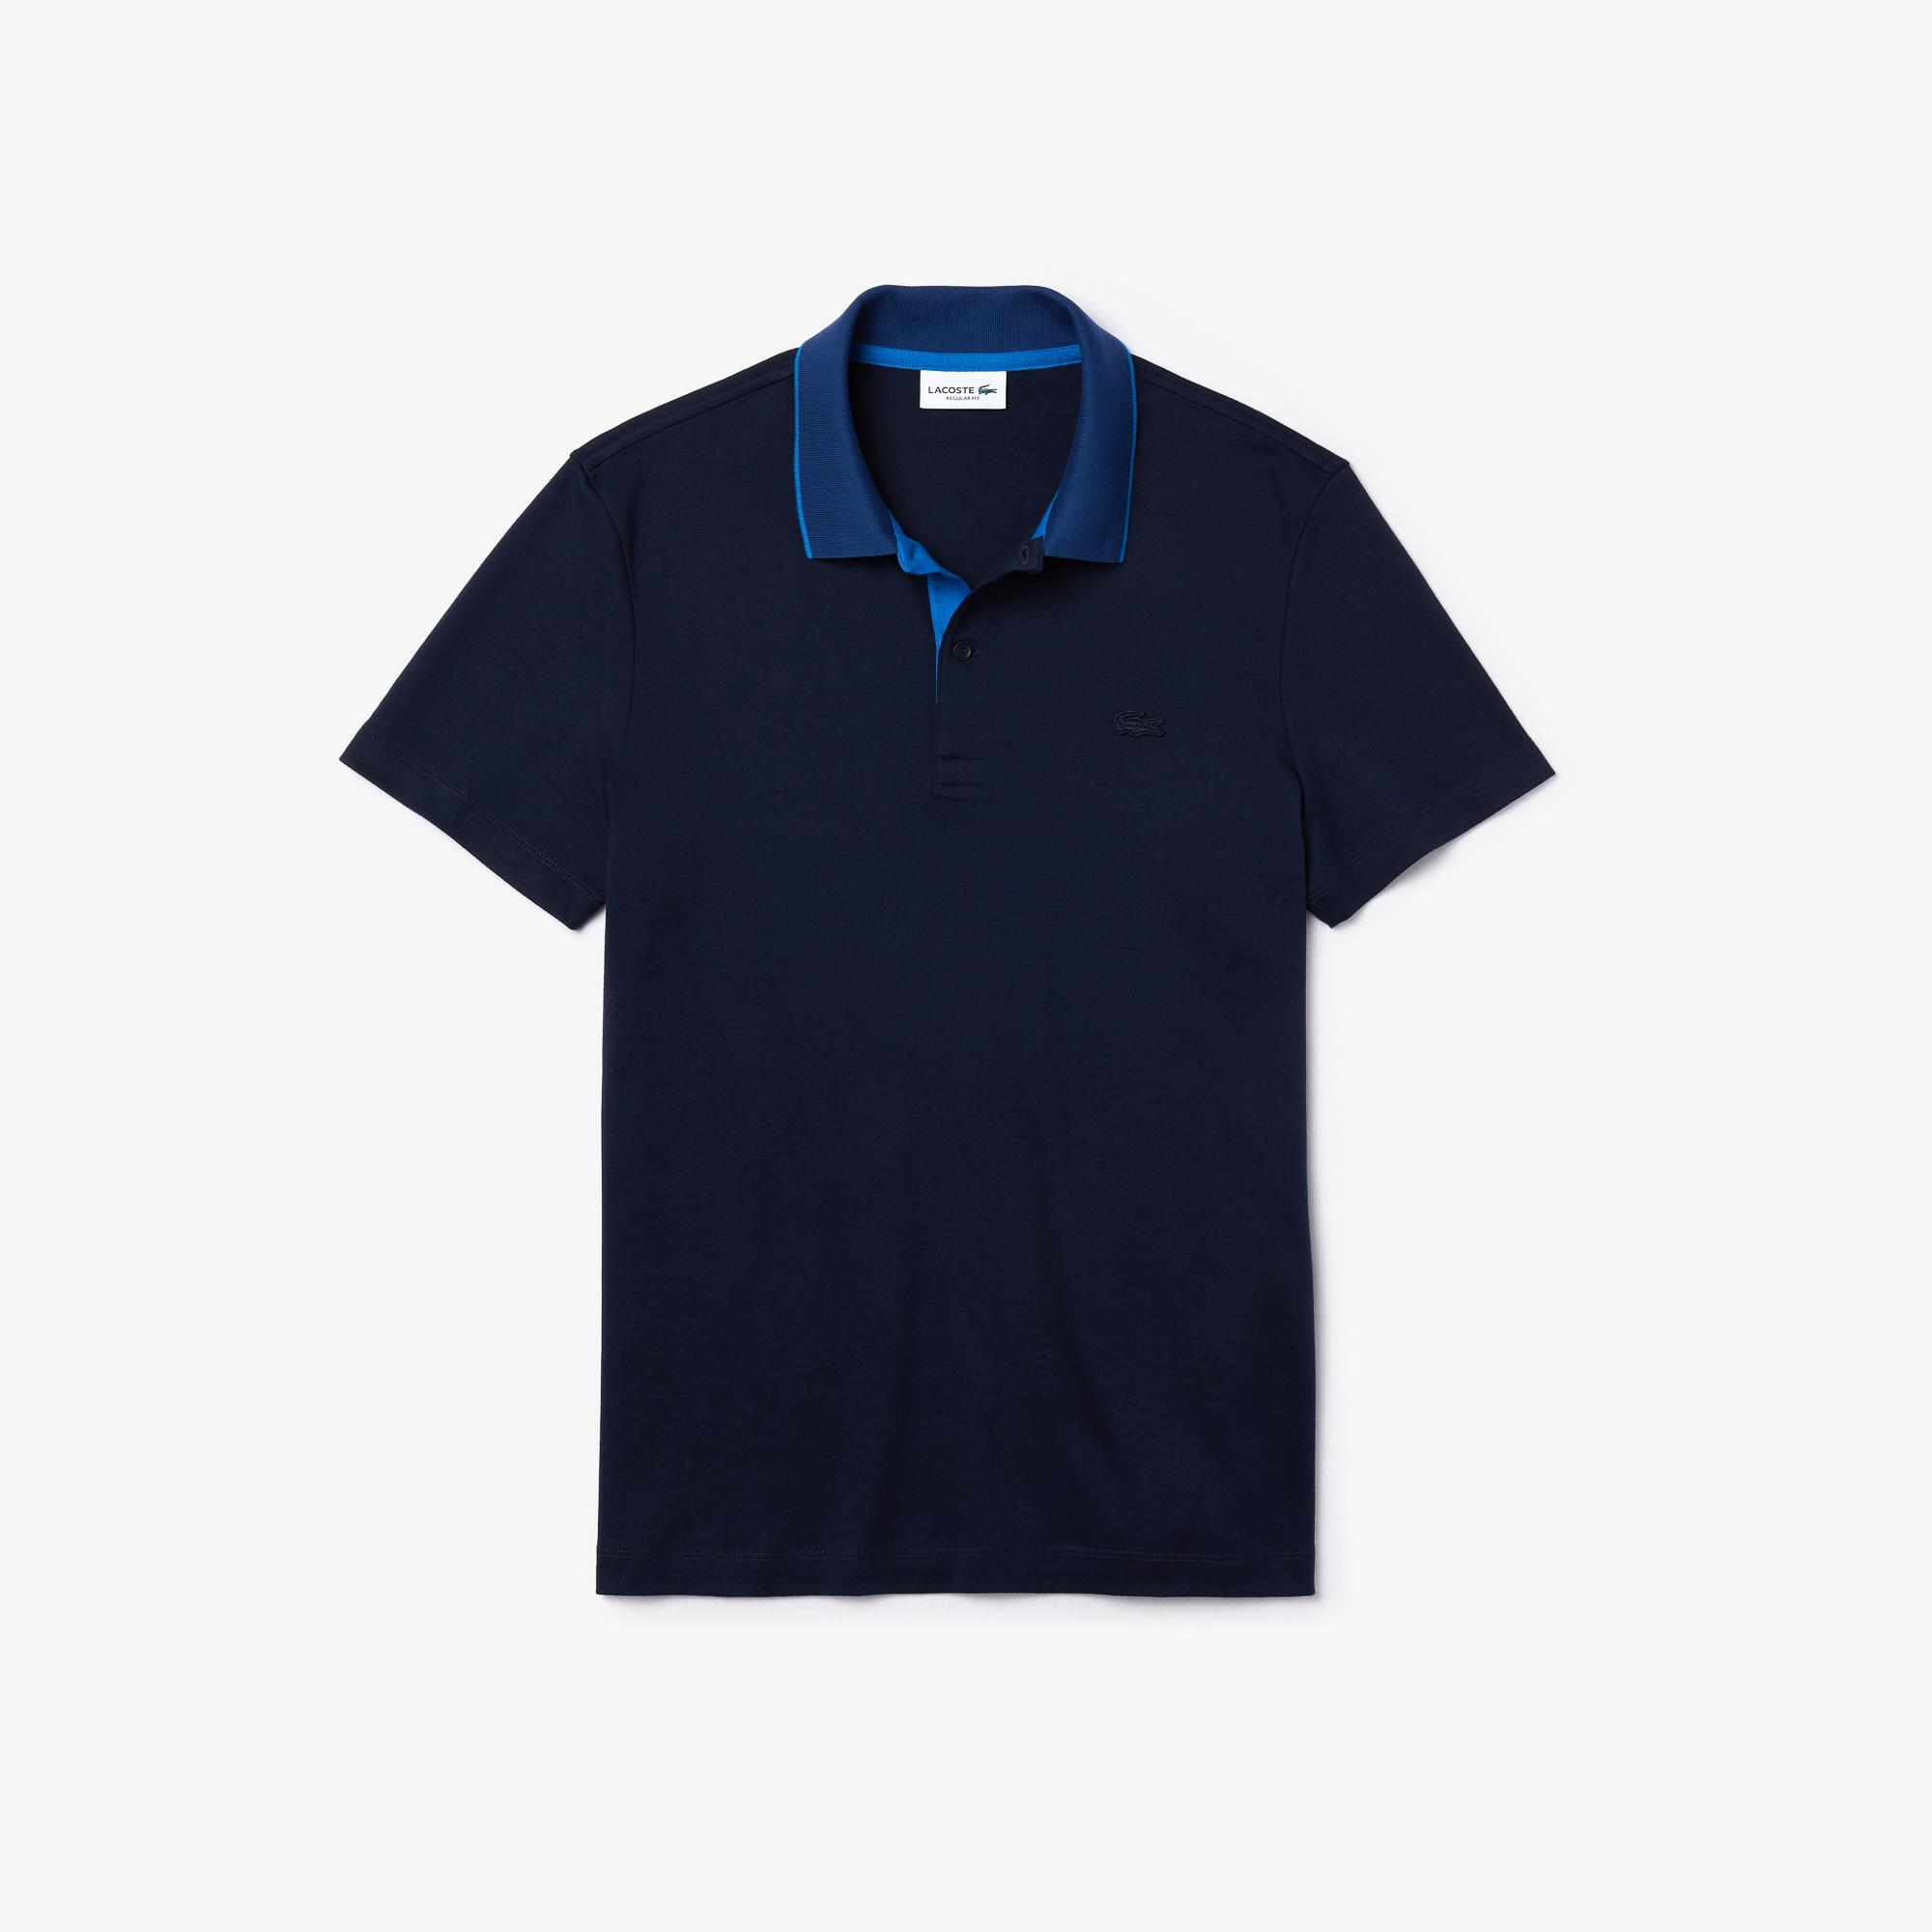 Lacoste Men's Regular Fit Contrast Collar Soft Cotton Polo